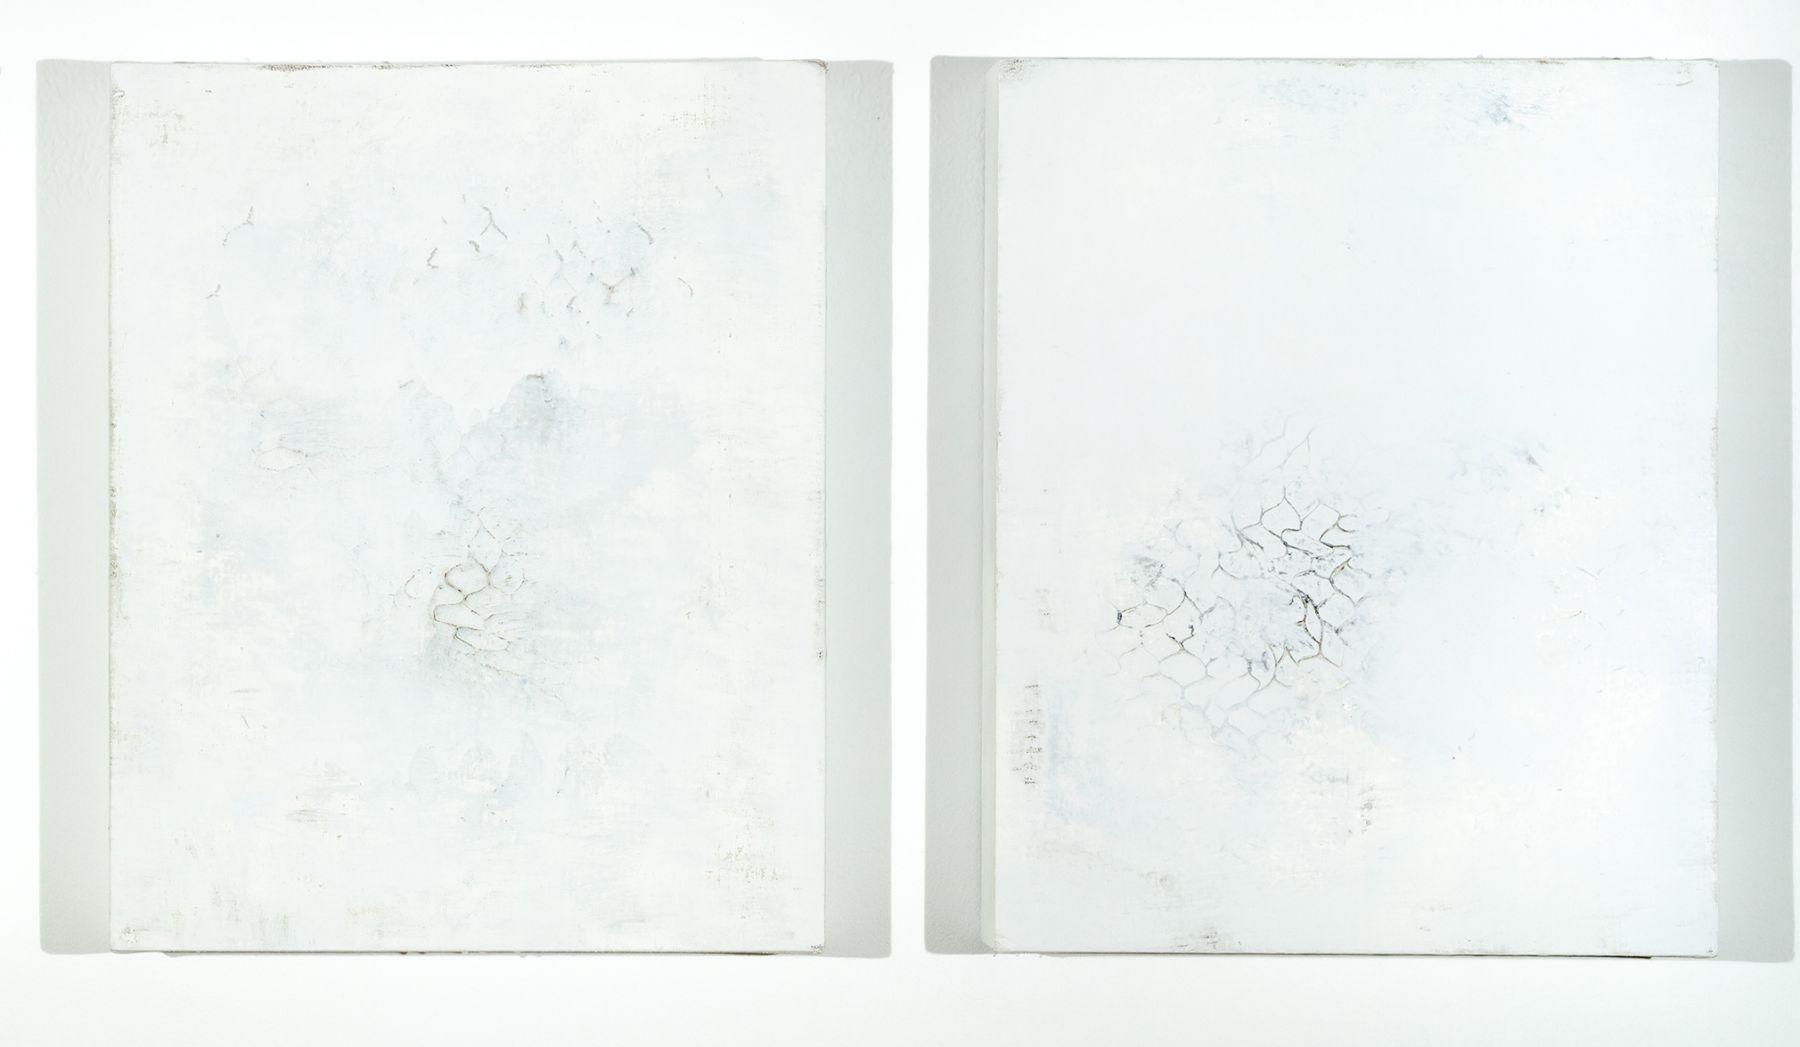 SIDONIE VILLERE Diffuse[diptych], 2014